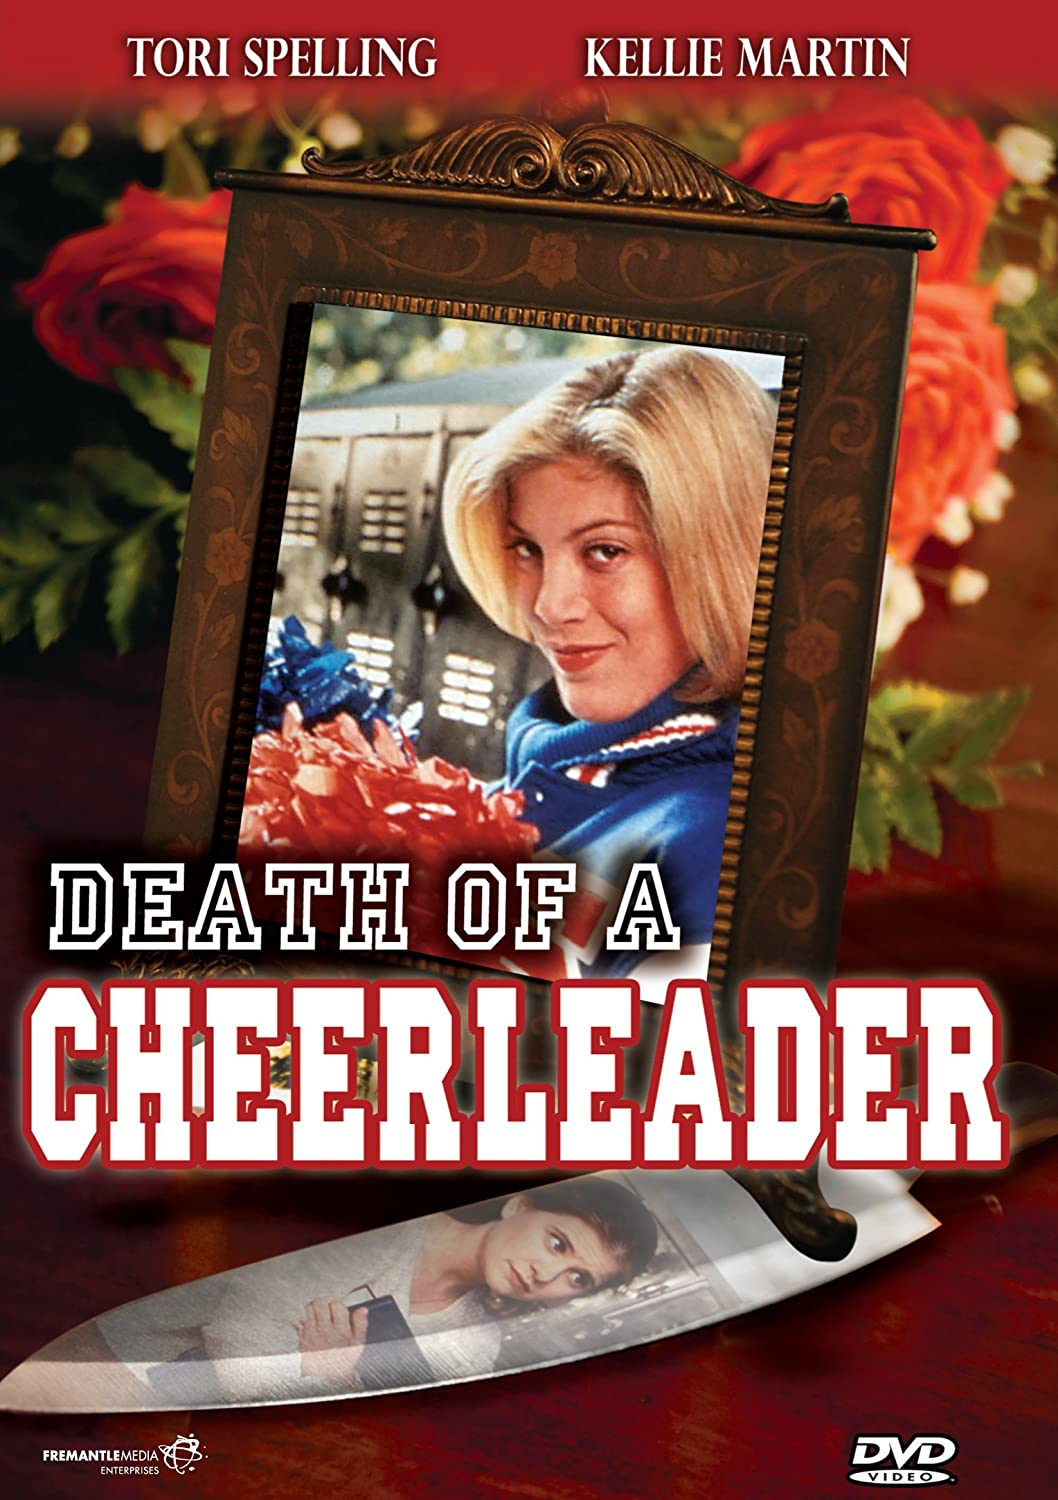 Amazon in: Buy DEATH OF A CHEERLEADER DVD, Blu-ray Online at